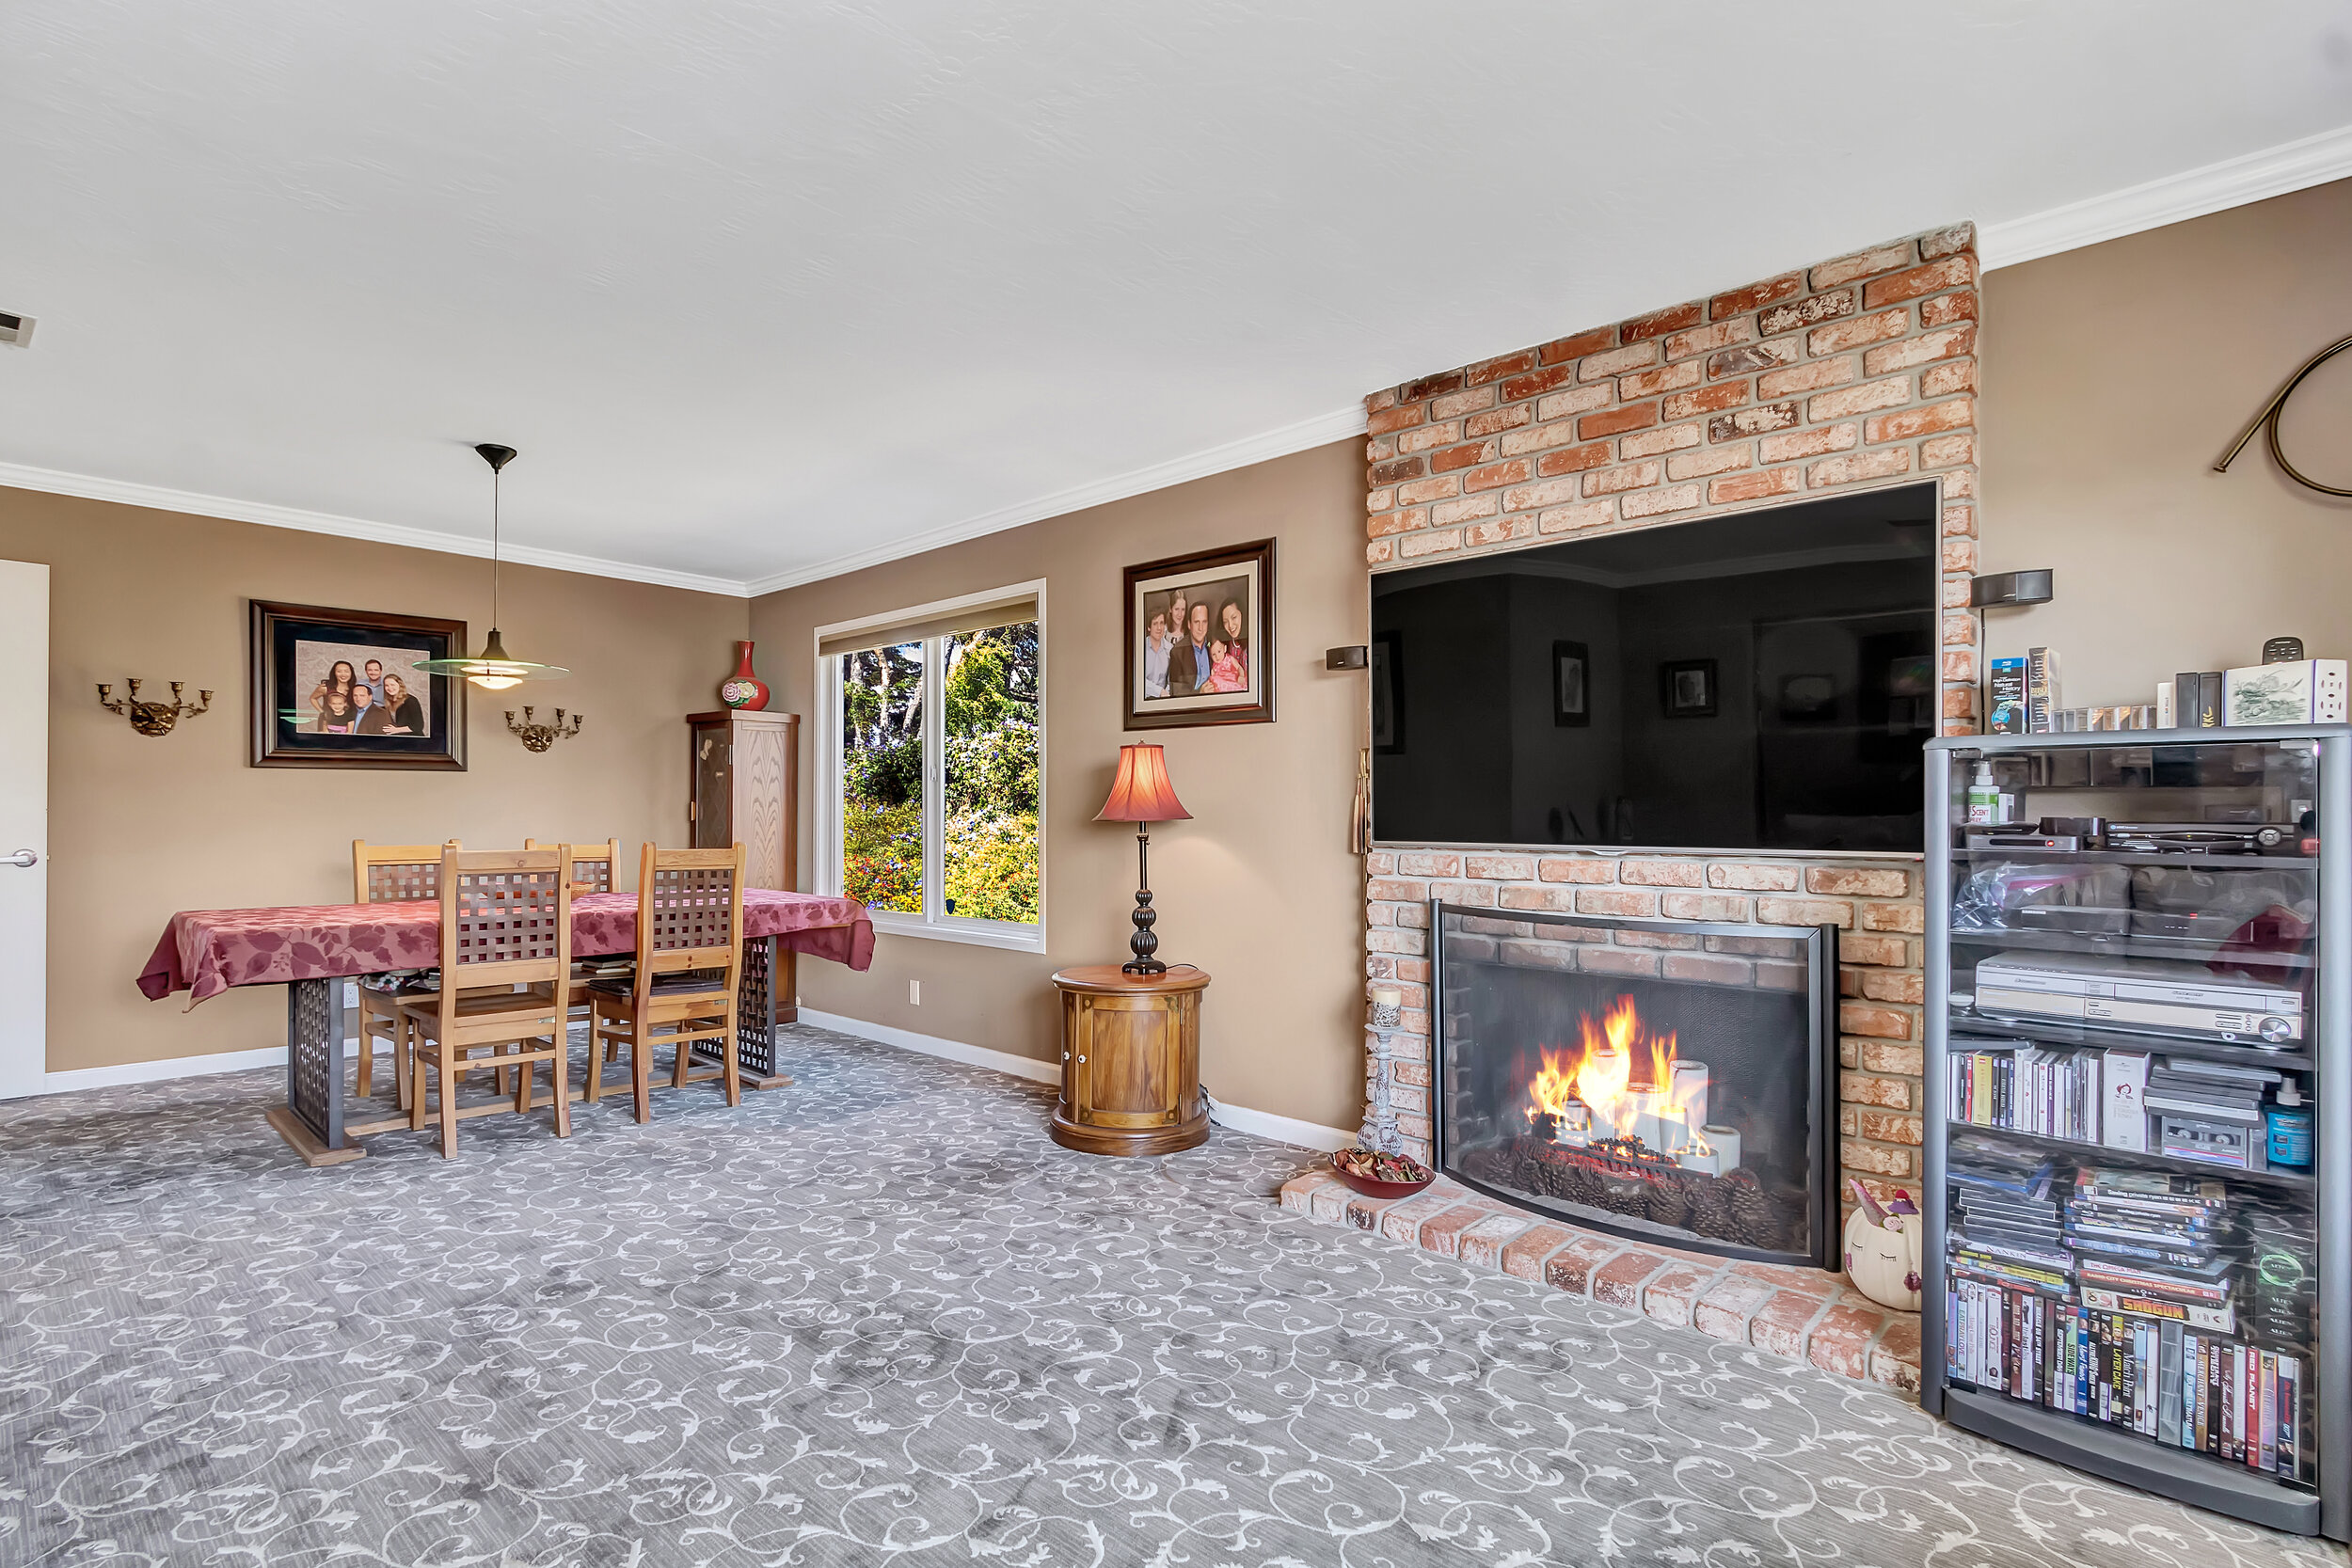 Spacious combined living/dining area with floor-to-ceiling brick fireplace.